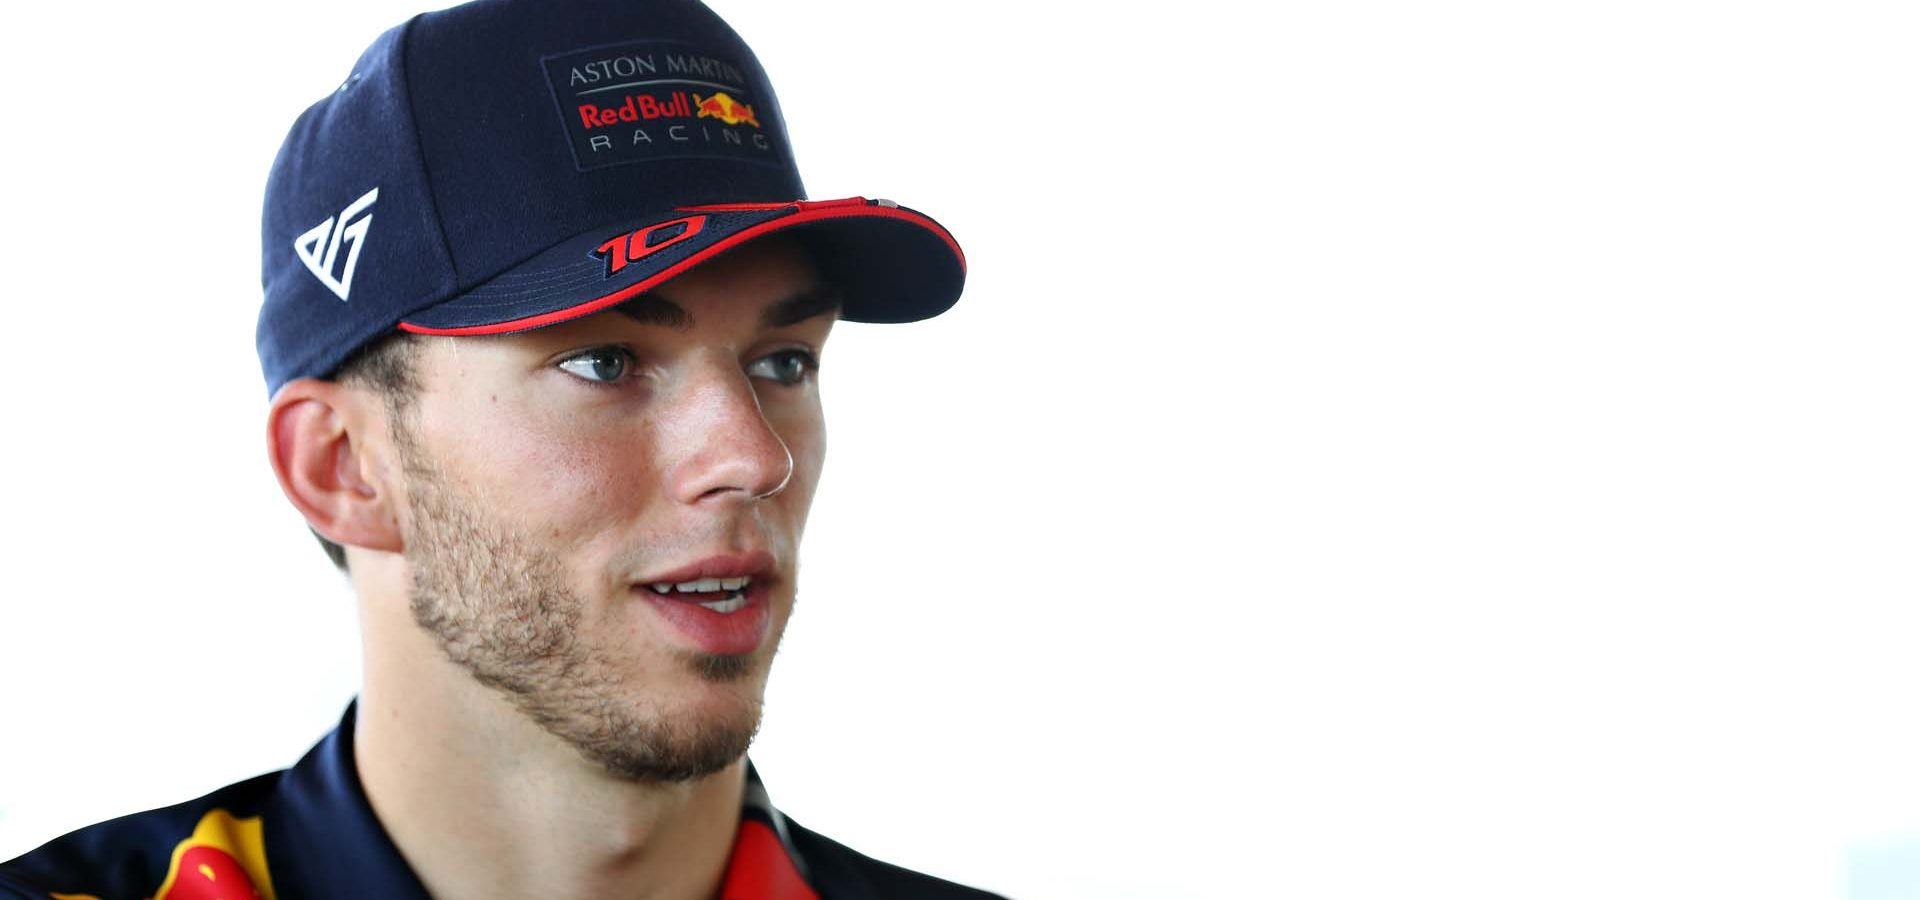 HOCKENHEIM, GERMANY - JULY 25: Pierre Gasly of France and Red Bull Racing talks to the media in the Paddock during previews ahead of the F1 Grand Prix of Germany at Hockenheimring on July 25, 2019 in Hockenheim, Germany. (Photo by Mark Thompson/Getty Images) // Getty Images / Red Bull Content Pool  // AP-212AKZVMW2511 // Usage for editorial use only // Please go to www.redbullcontentpool.com for further information. //